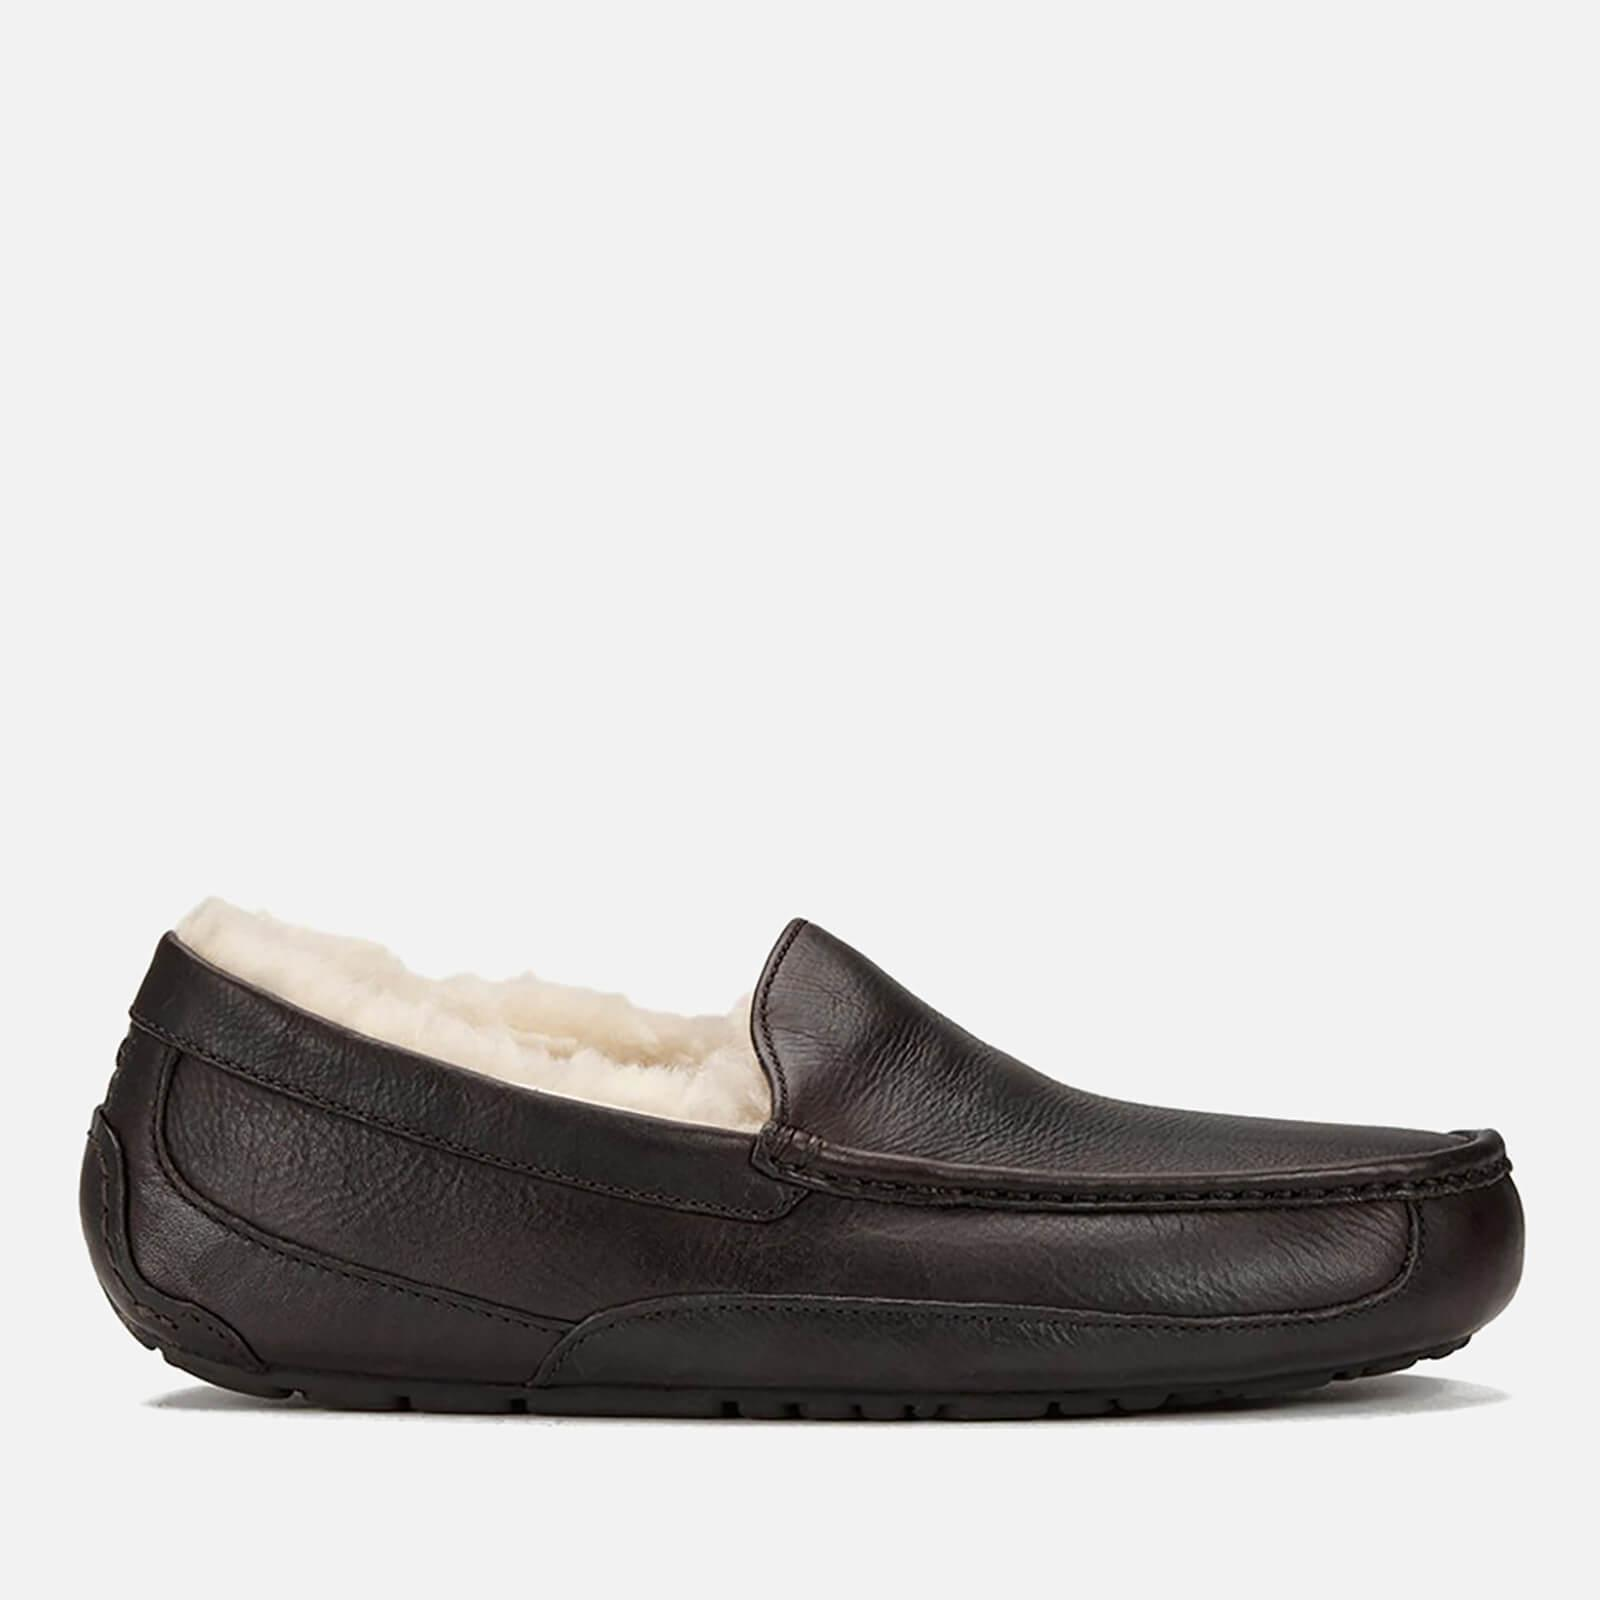 4bad175341a6 Lyst - UGG Ascot Grain Leather Slippers in Brown for Men - Save 4%